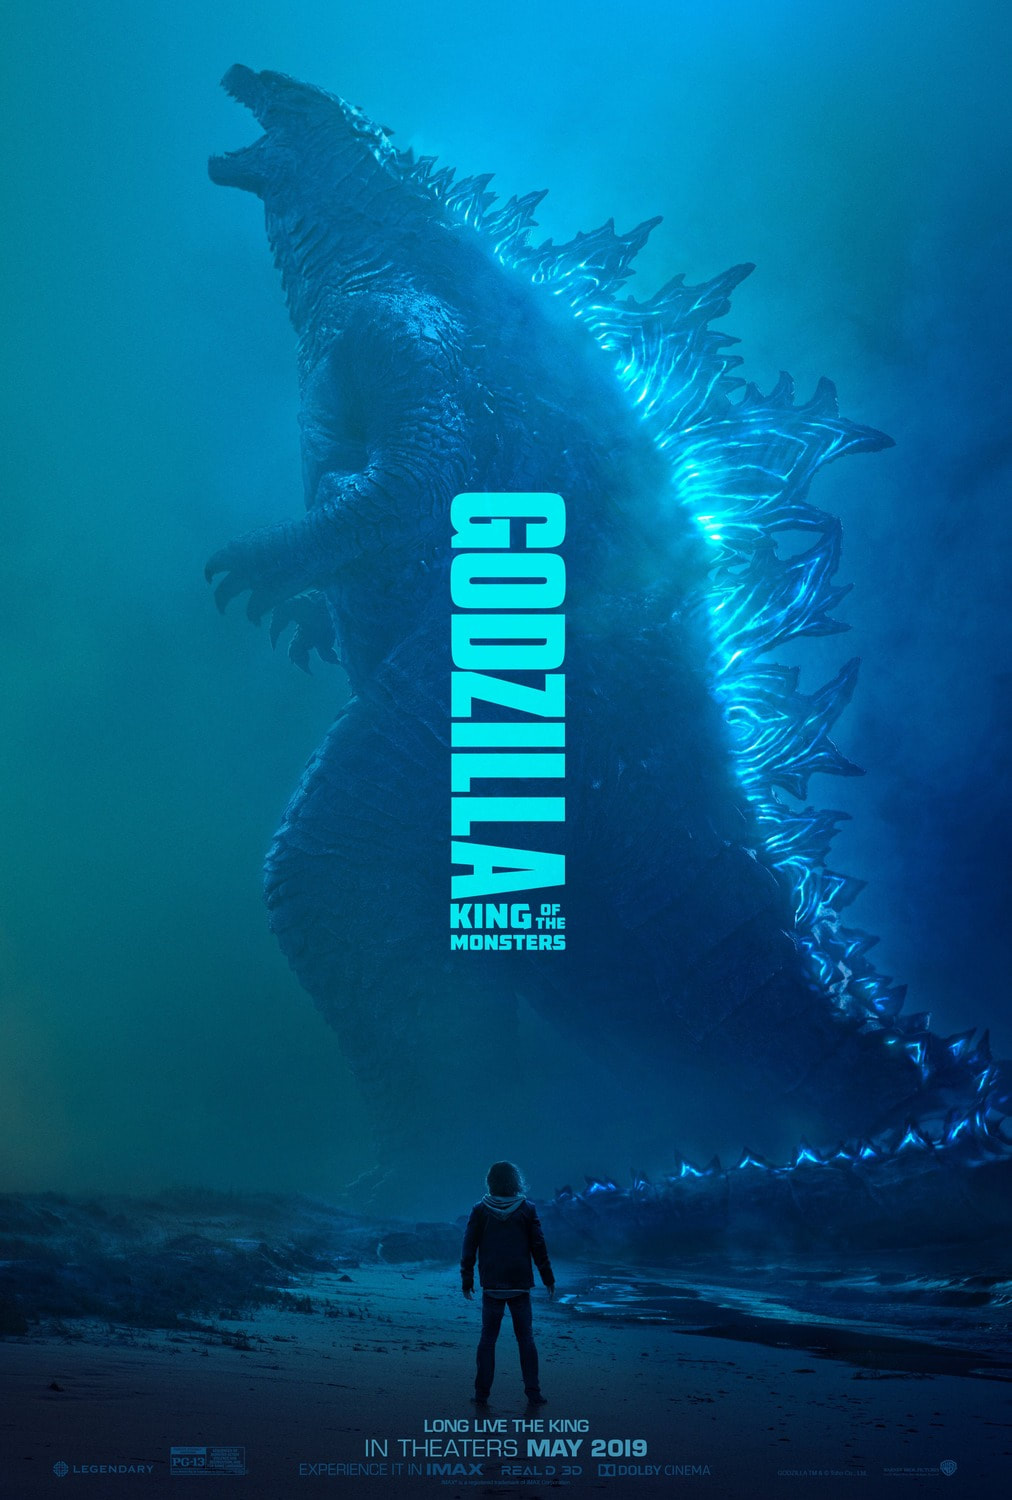 Godzilla-King-of-the-Monsters-movie-2019-poster